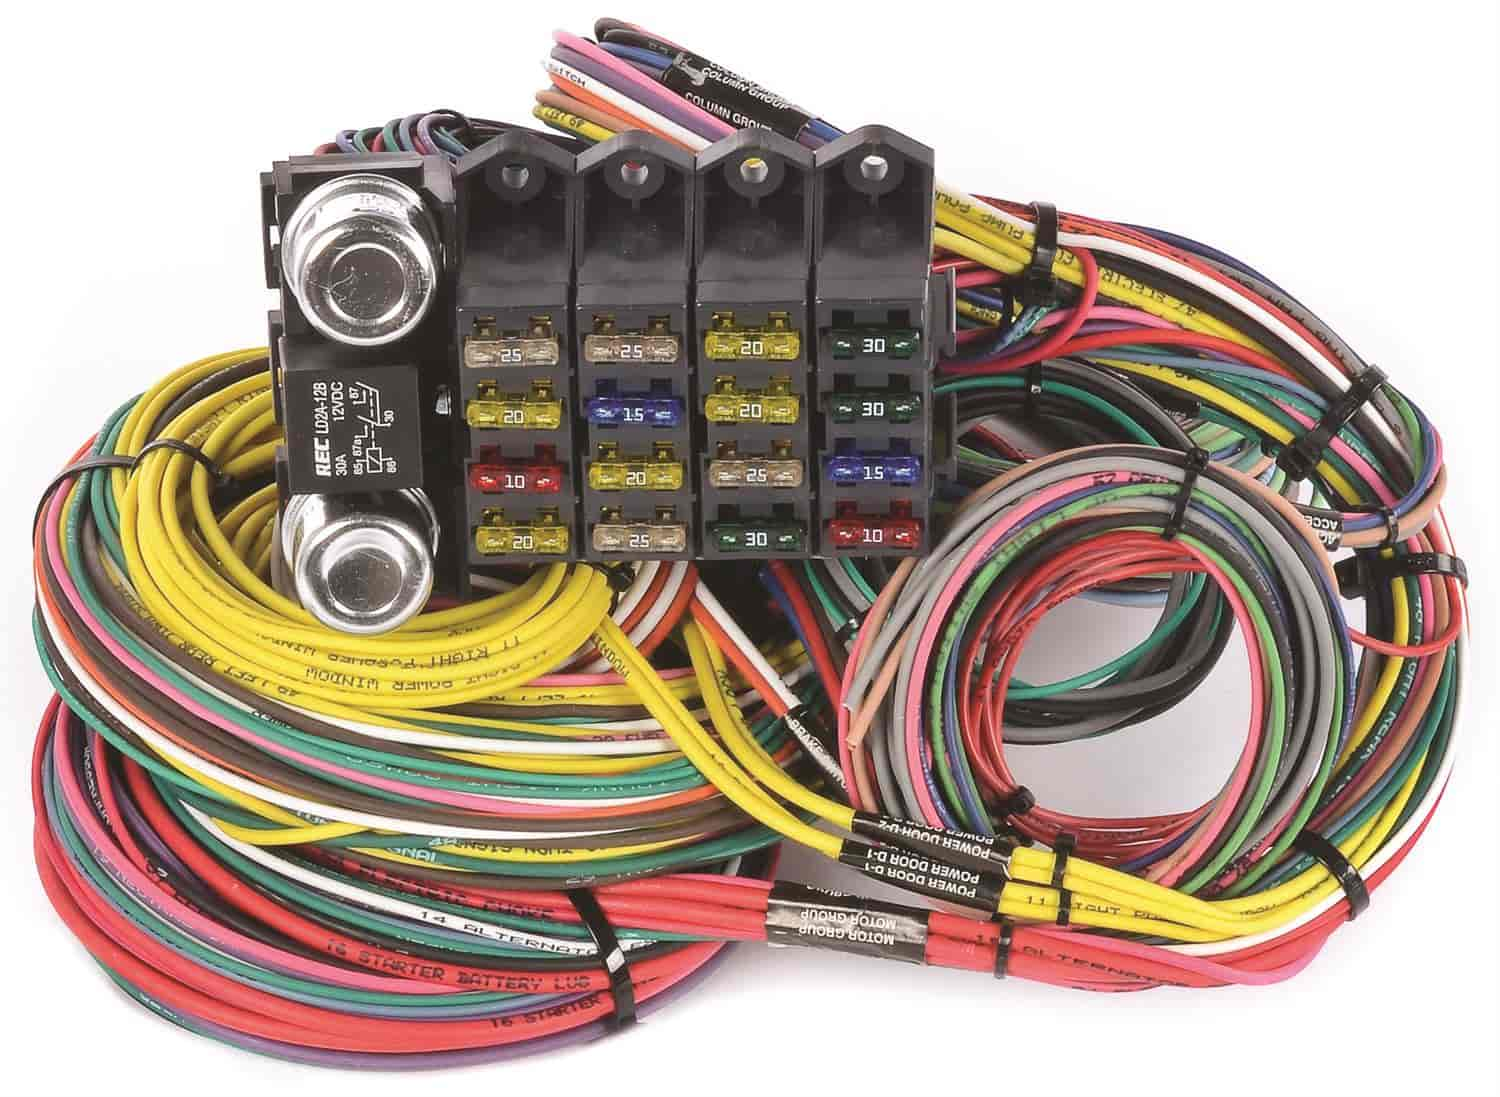 555 10405 jegs performance products 10405 universal wiring harness, 20 jegs universal wiring harness at nearapp.co